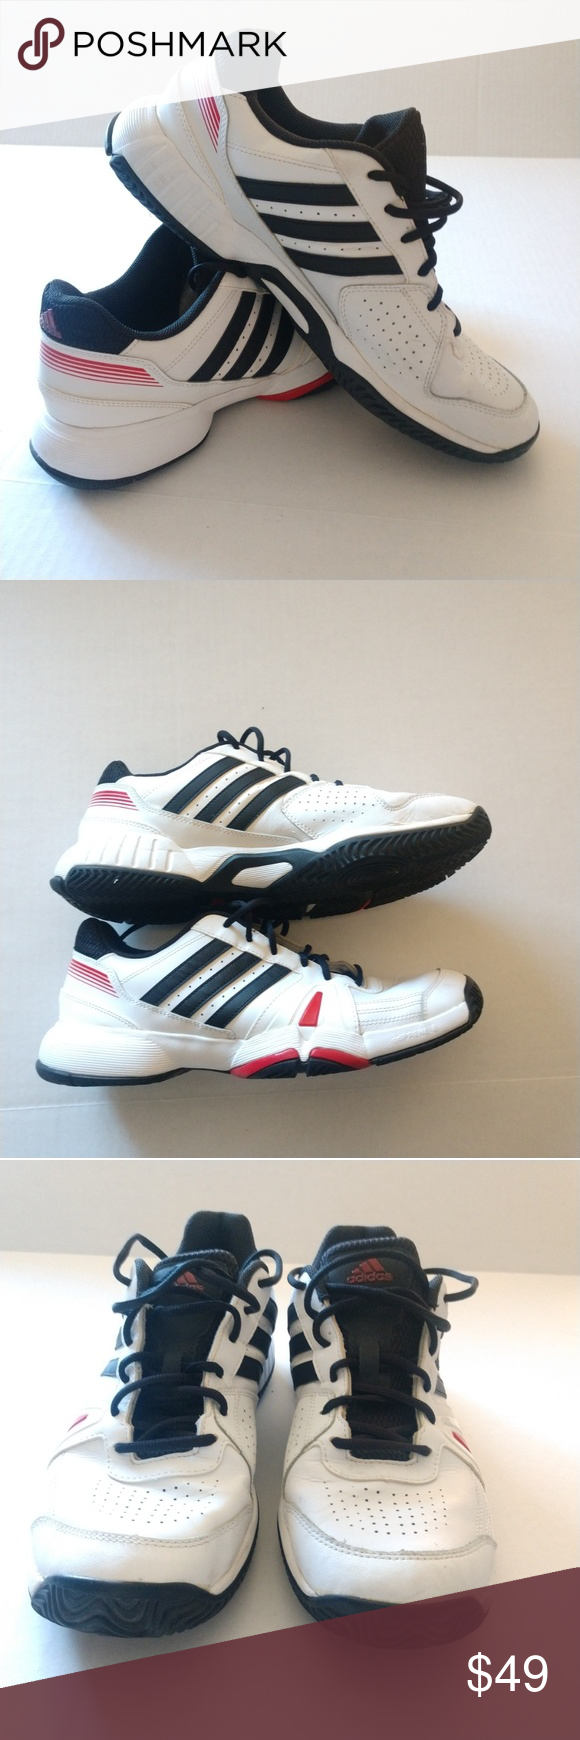 diferente a Honestidad Sur oeste  Adidas Adiprene Adiwear Tennis Shoe Sz 12 | Shoes sneakers adidas, Tennis  shoes, Shoes